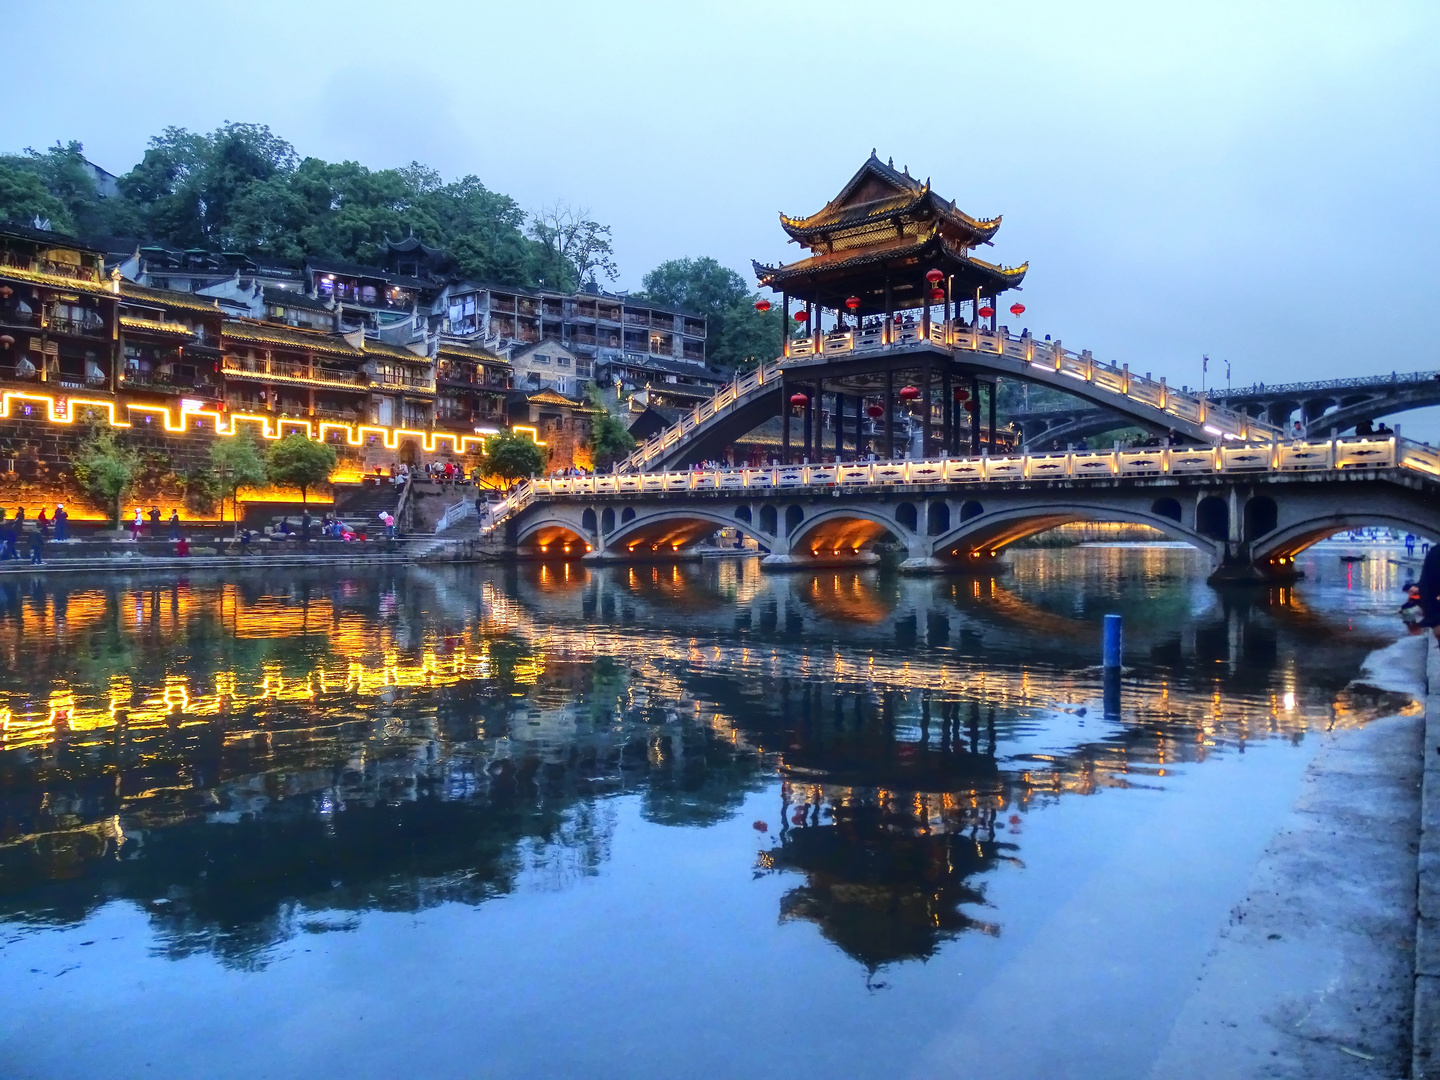 Spiegeltag 20.11.2018 - Fenghuang (China)